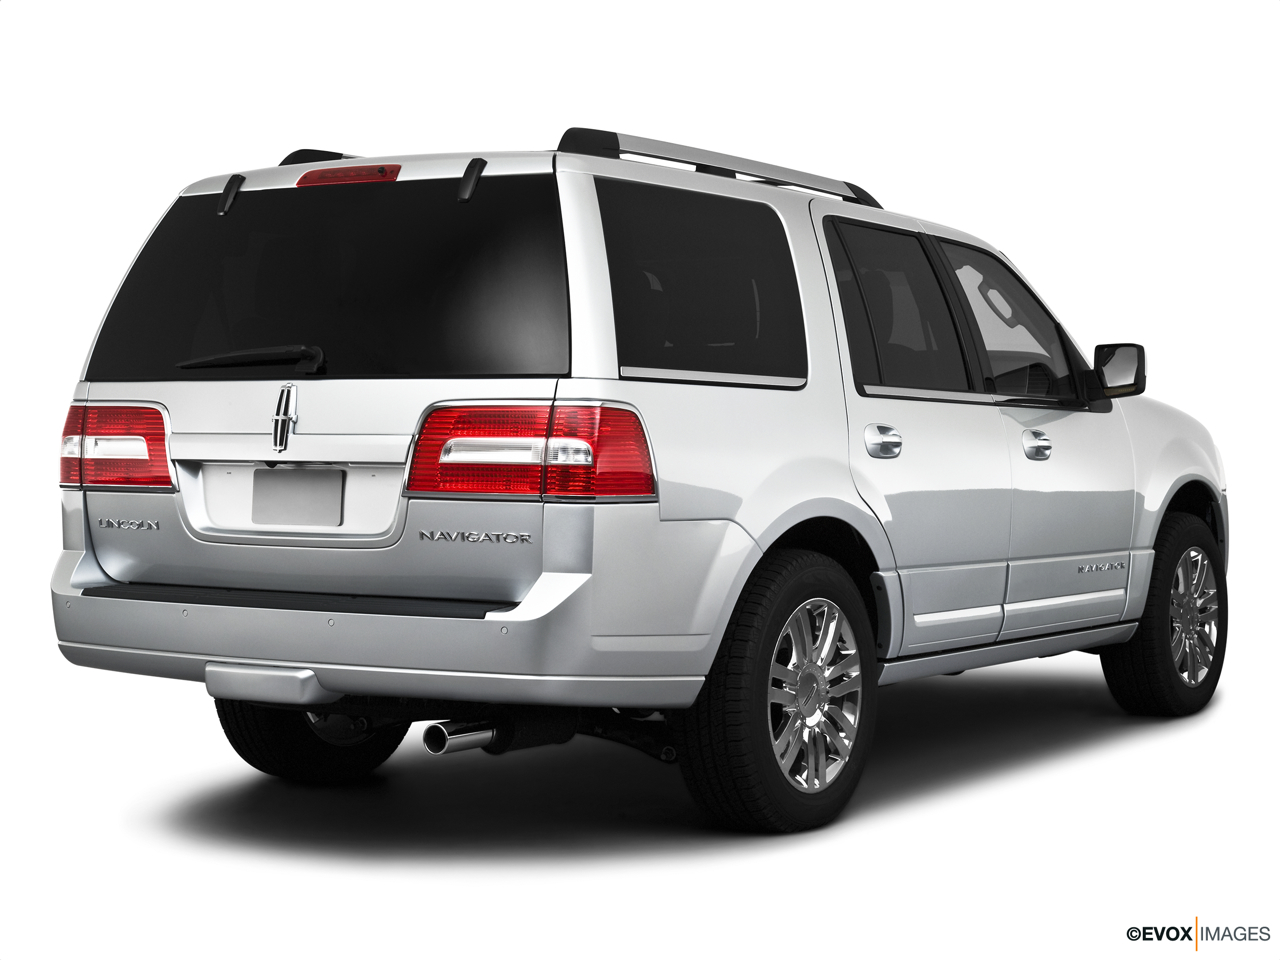 2010 Lincoln Navigator Base 048 - no description